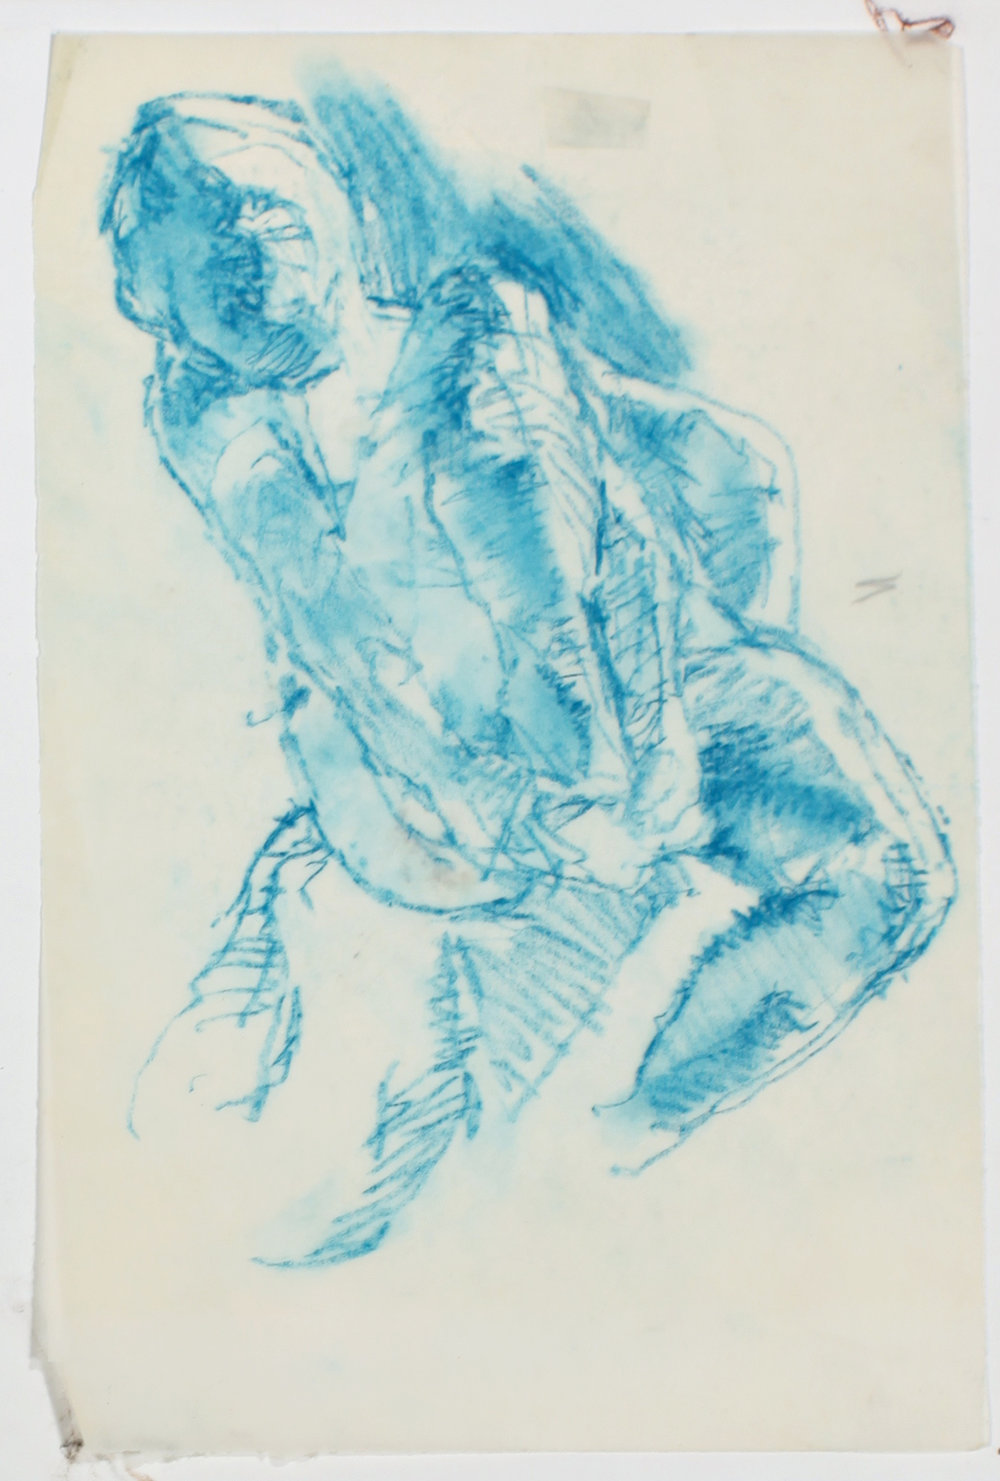 1980s_Blue_Nude_Adjusting_Shoe_pastel_on_tracing_paper_11x7in_WPF583.jpg